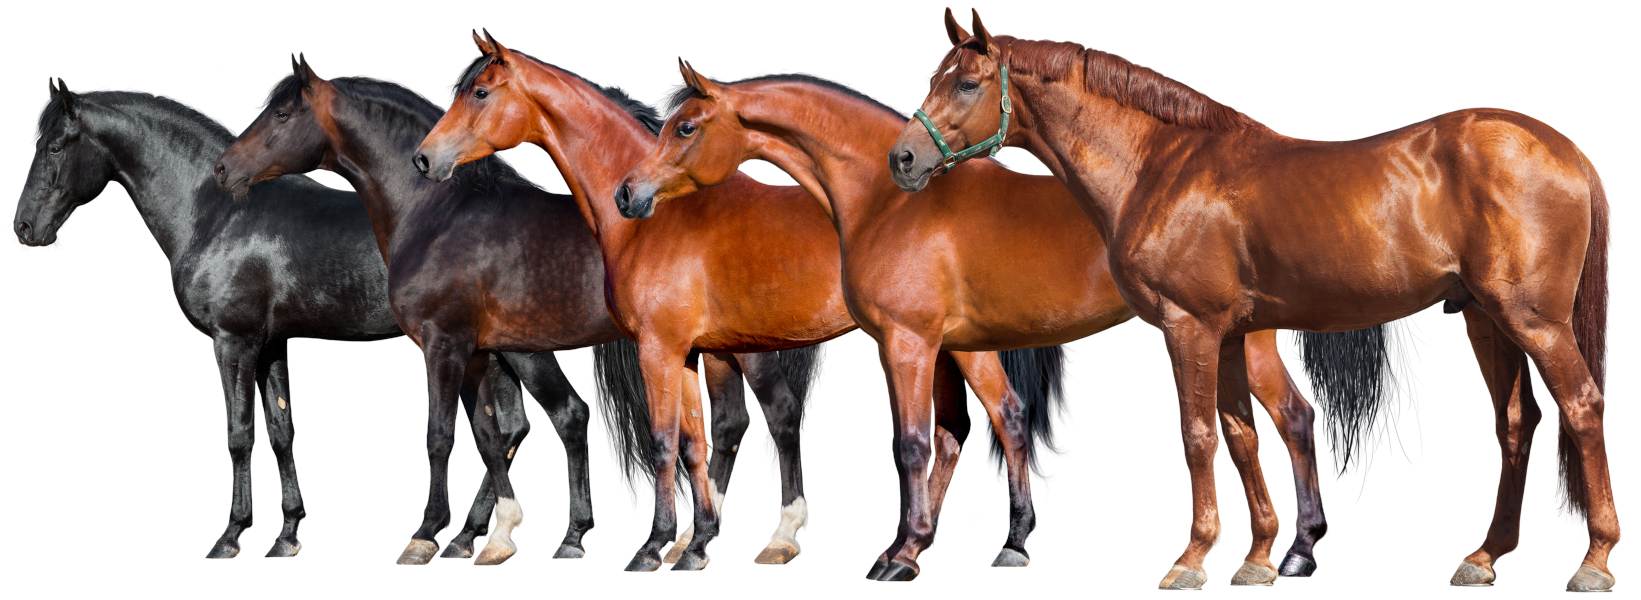 Group of red and black horses